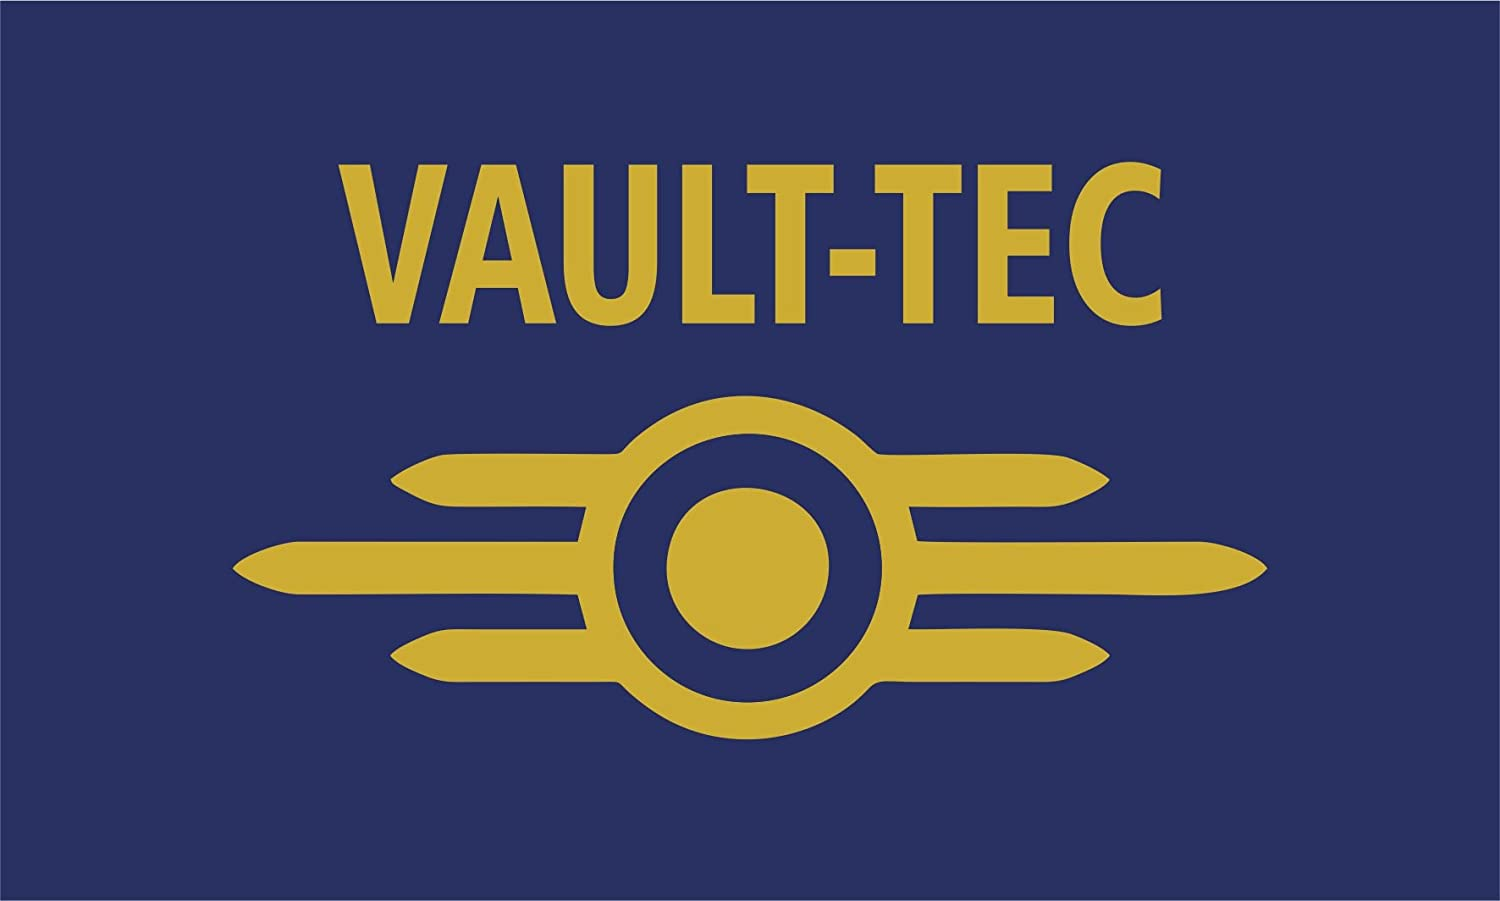 Fallout Vault-Tec Banner Flag 3x5 Corporate Logo Vaulttec 3x5 Ships from the USA